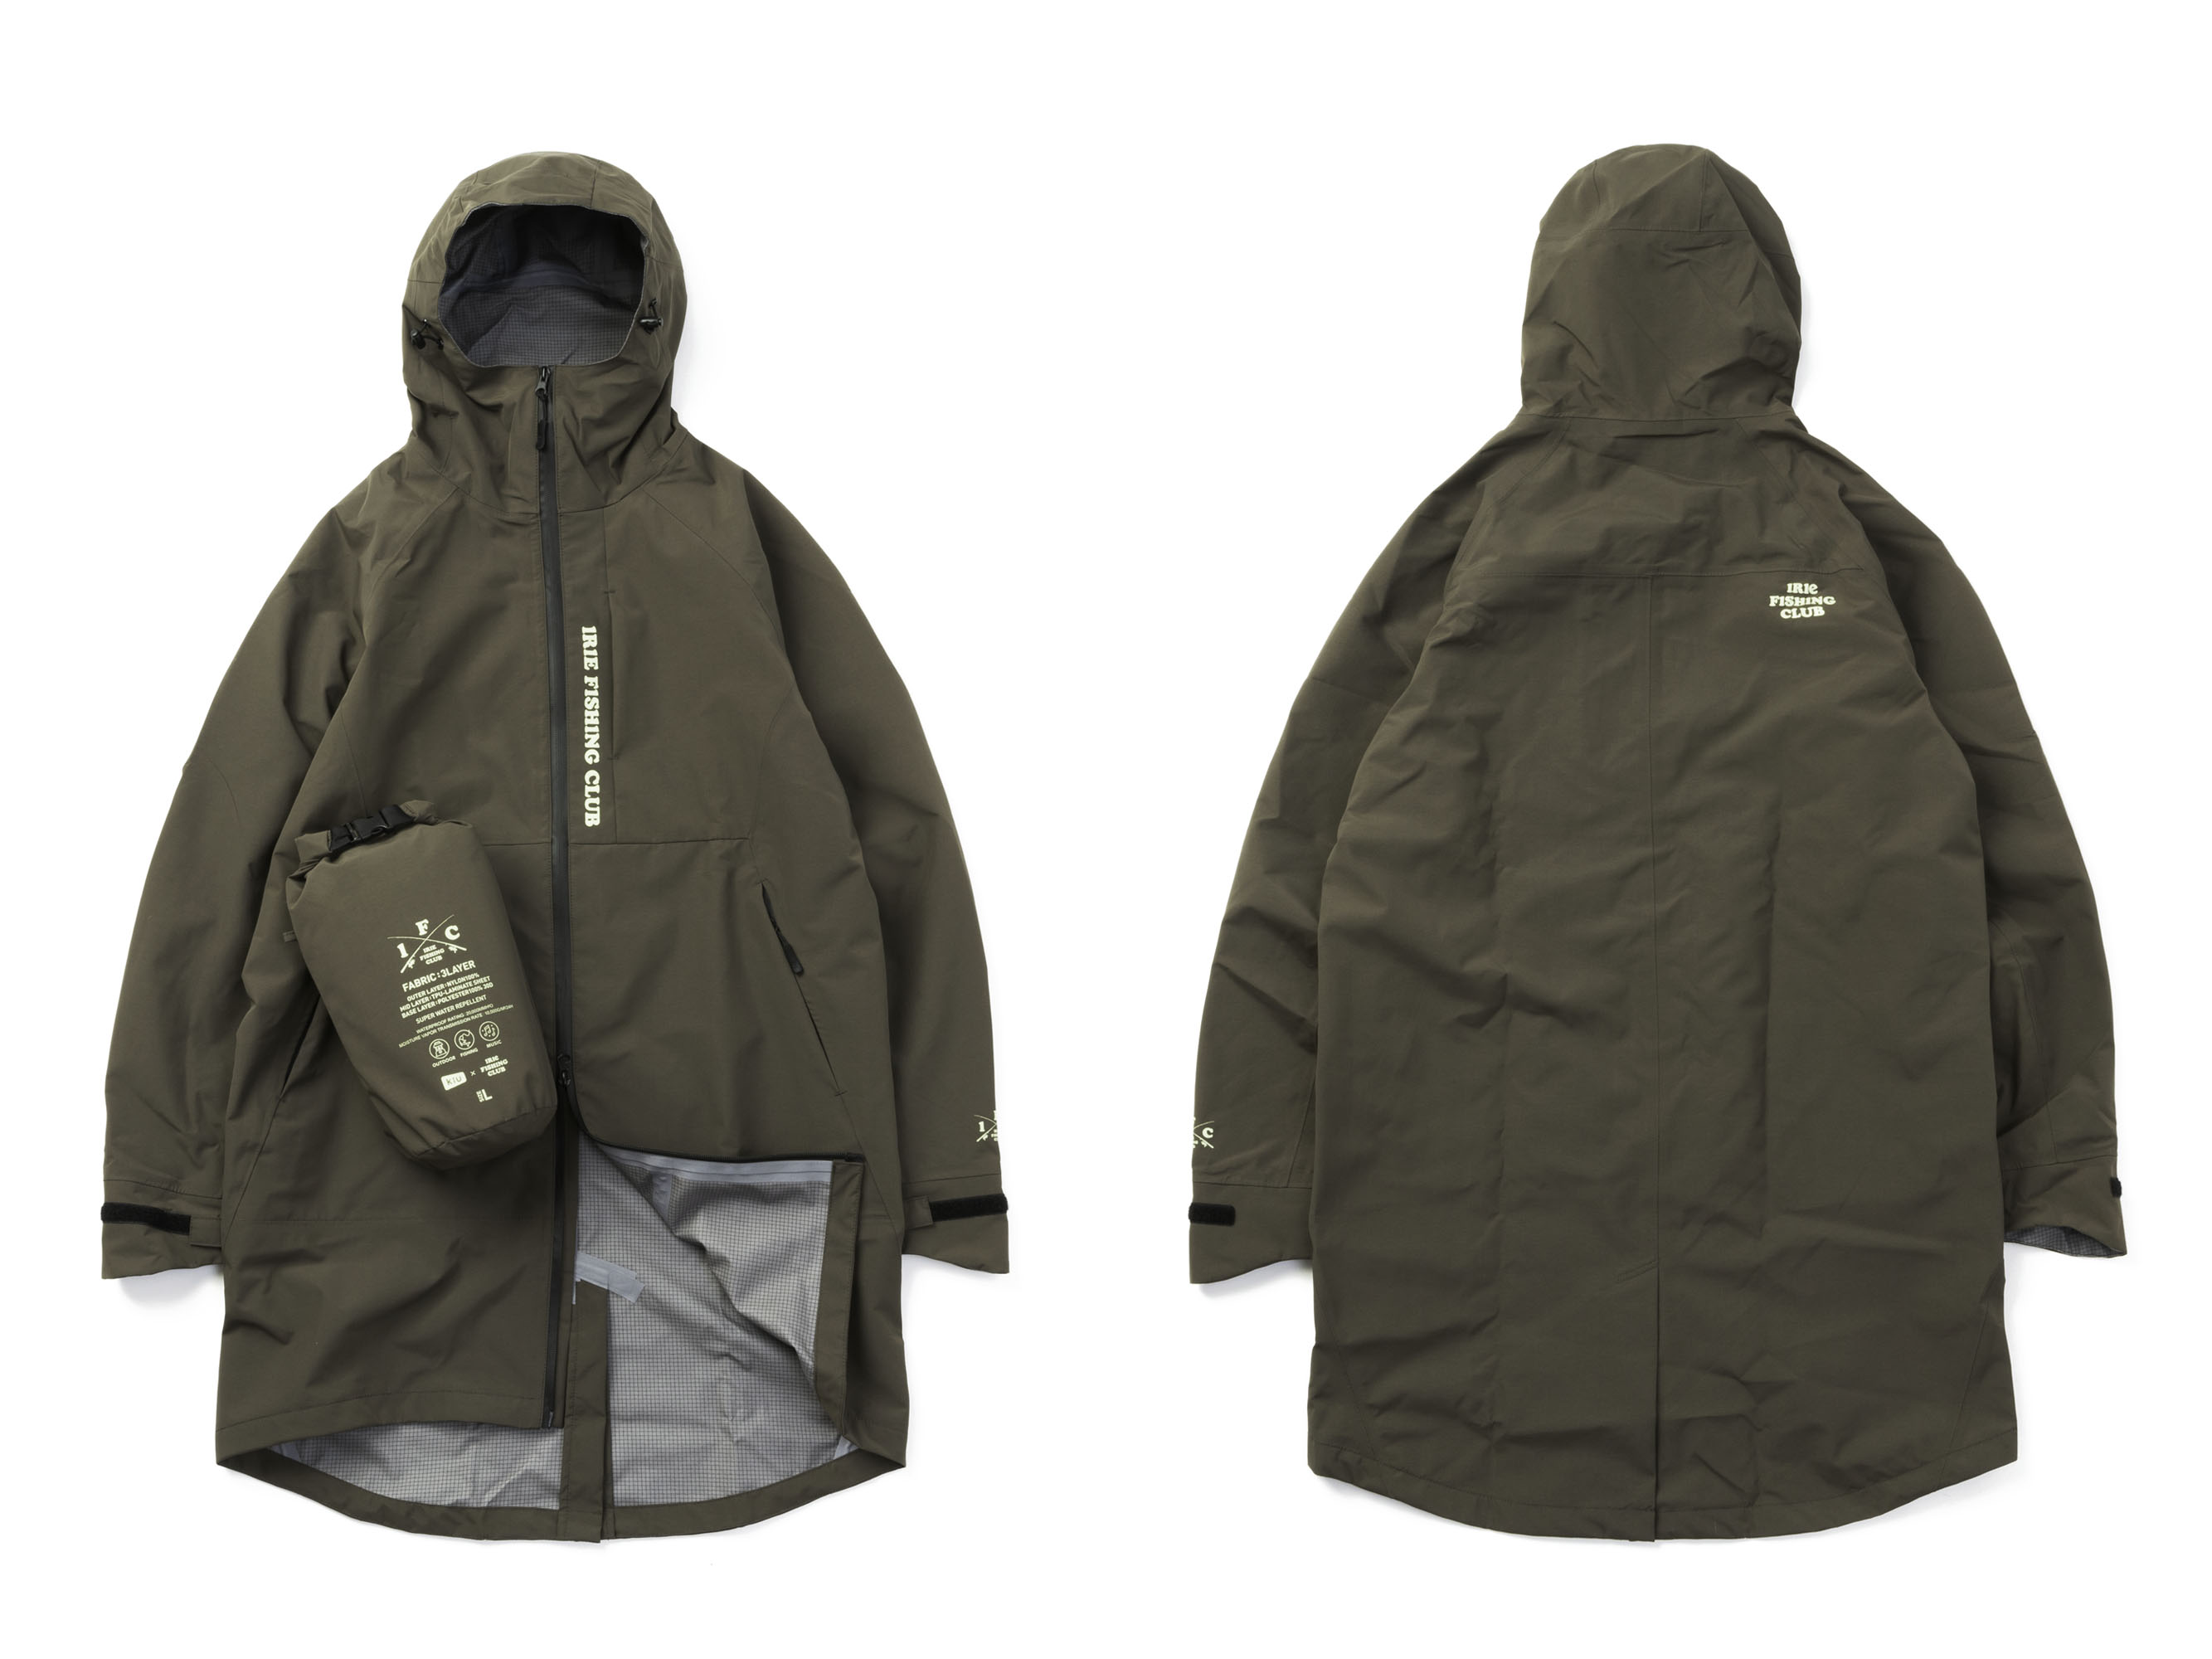 【×KIU】 IFC SLICKER RAIN LONG JACKET - IRIE FISHING CLUB